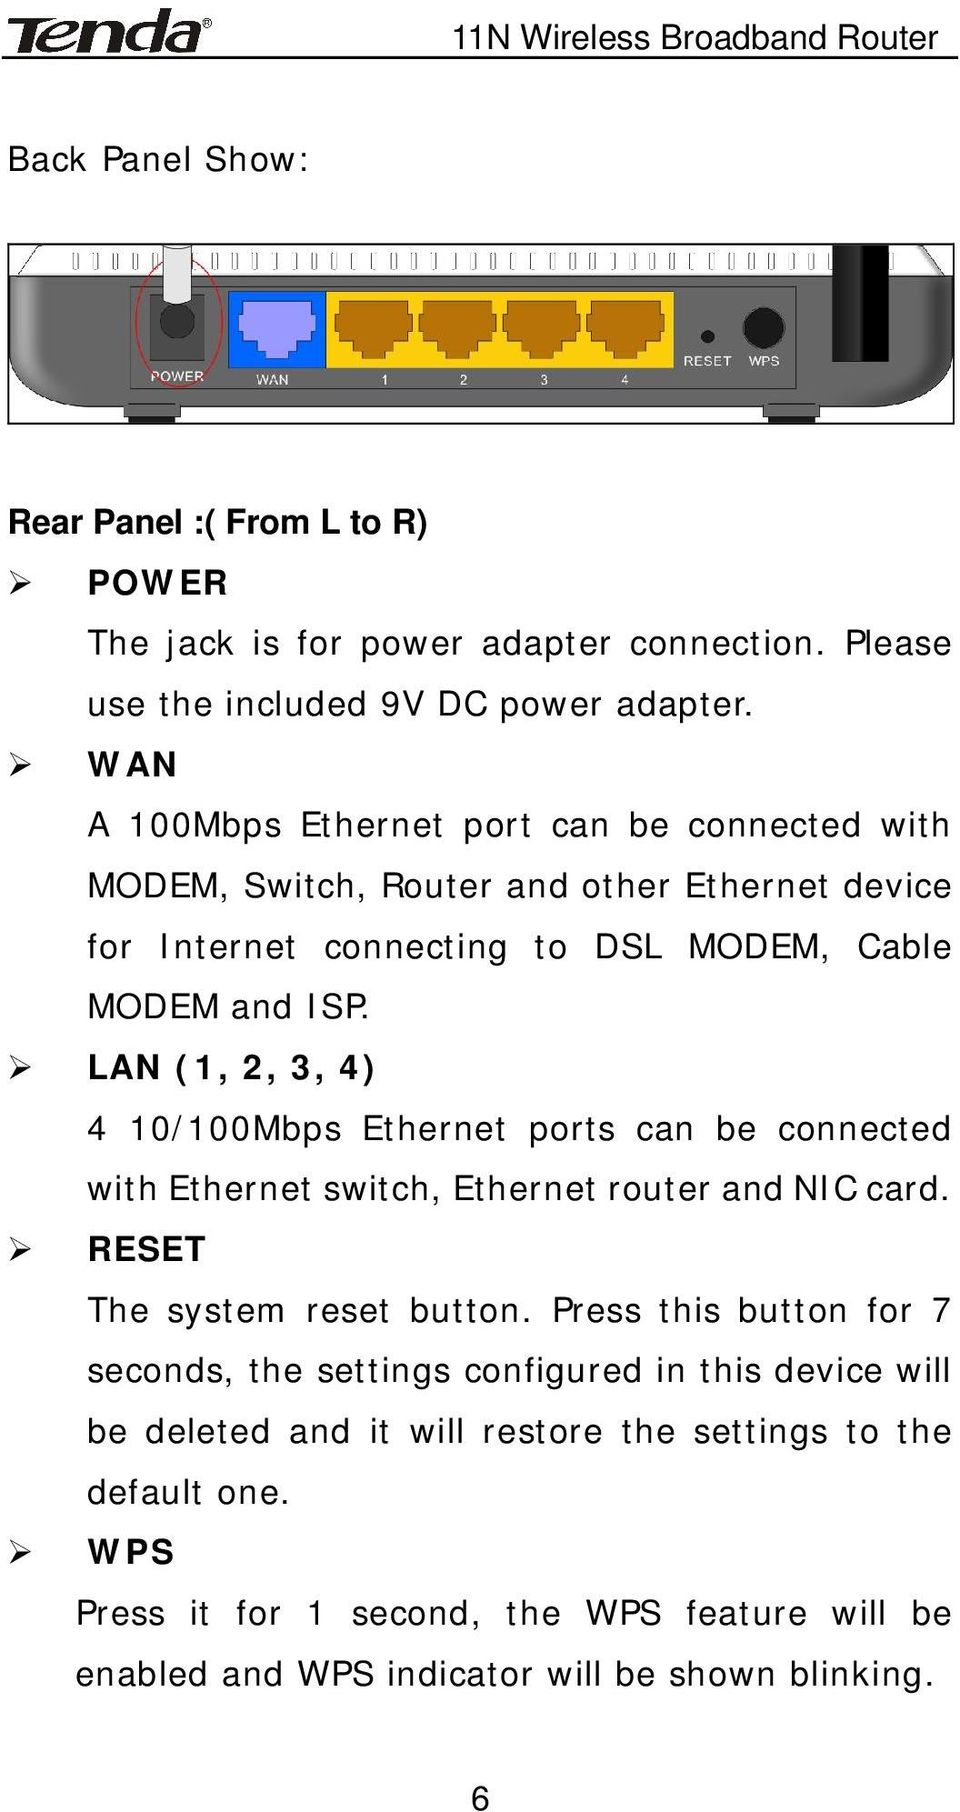 LAN (1, 2, 3, 4) 4 10/100Mbps Ethernet ports can be connected with Ethernet switch, Ethernet router and NIC card. RESET The system reset button.